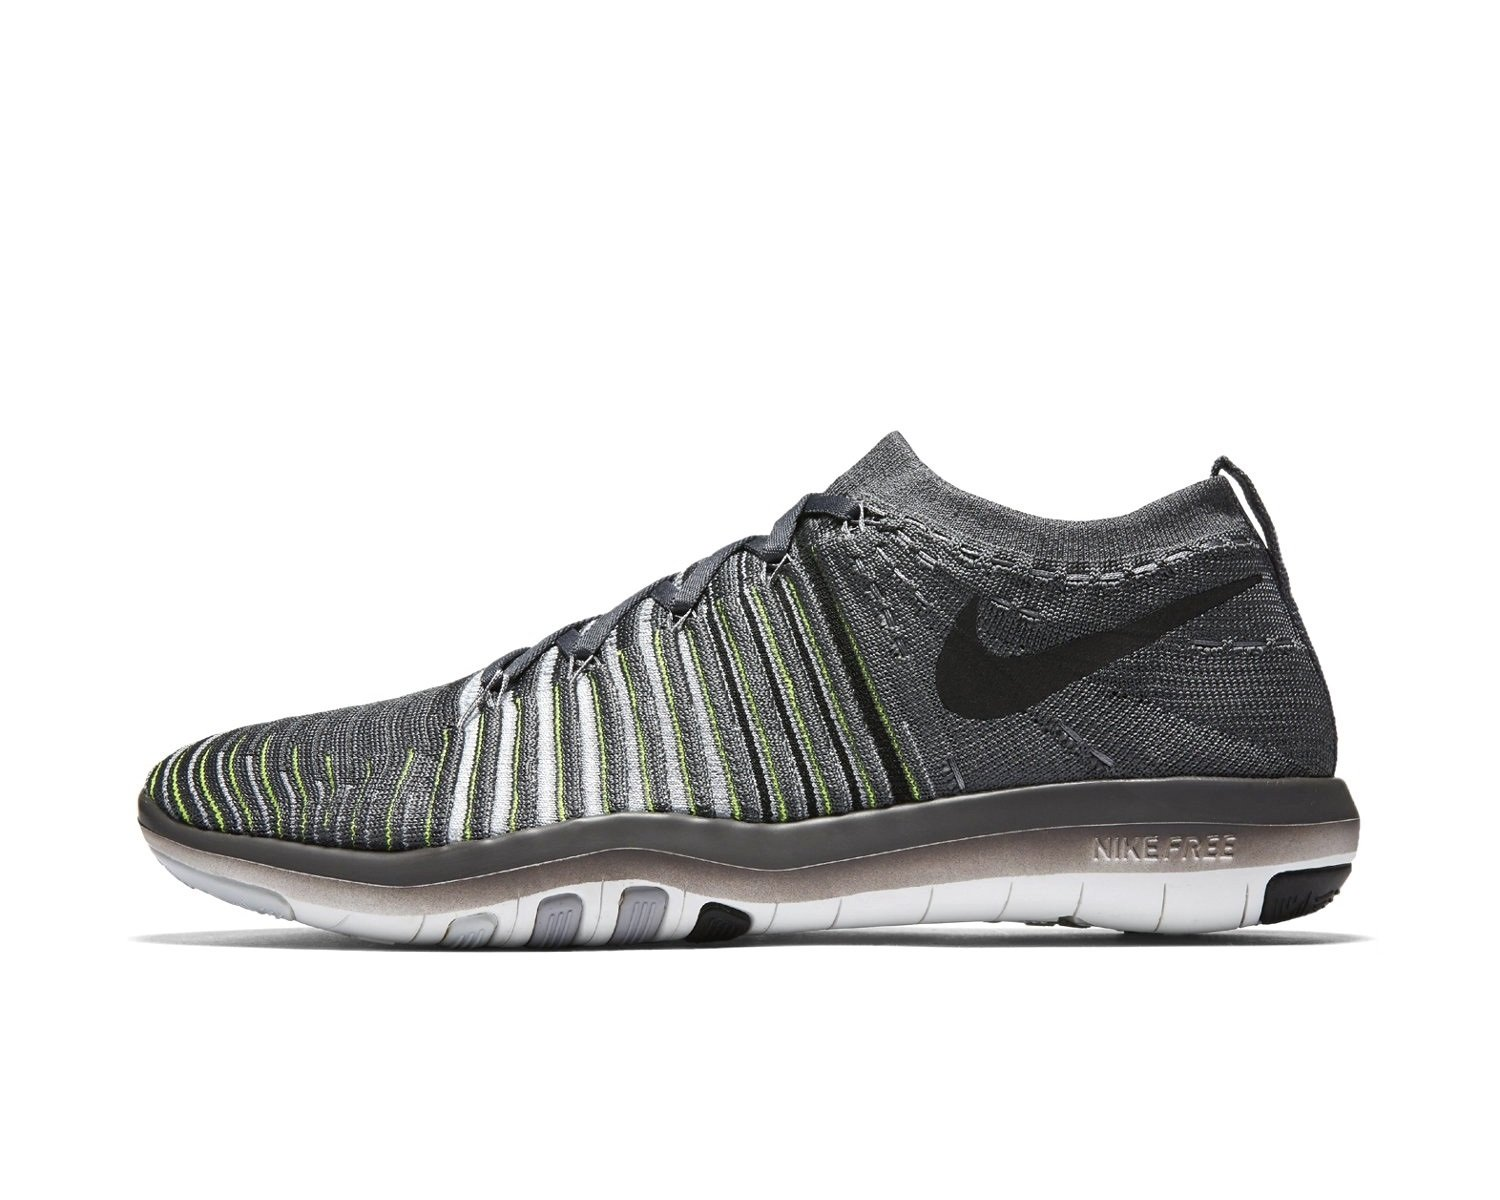 NIKE Womens Free Focus Flyknit Mesh Breathable Trainers B06XY4F23Z 8.5 B(M) US|Dark Grey Black Wolf Grey 004